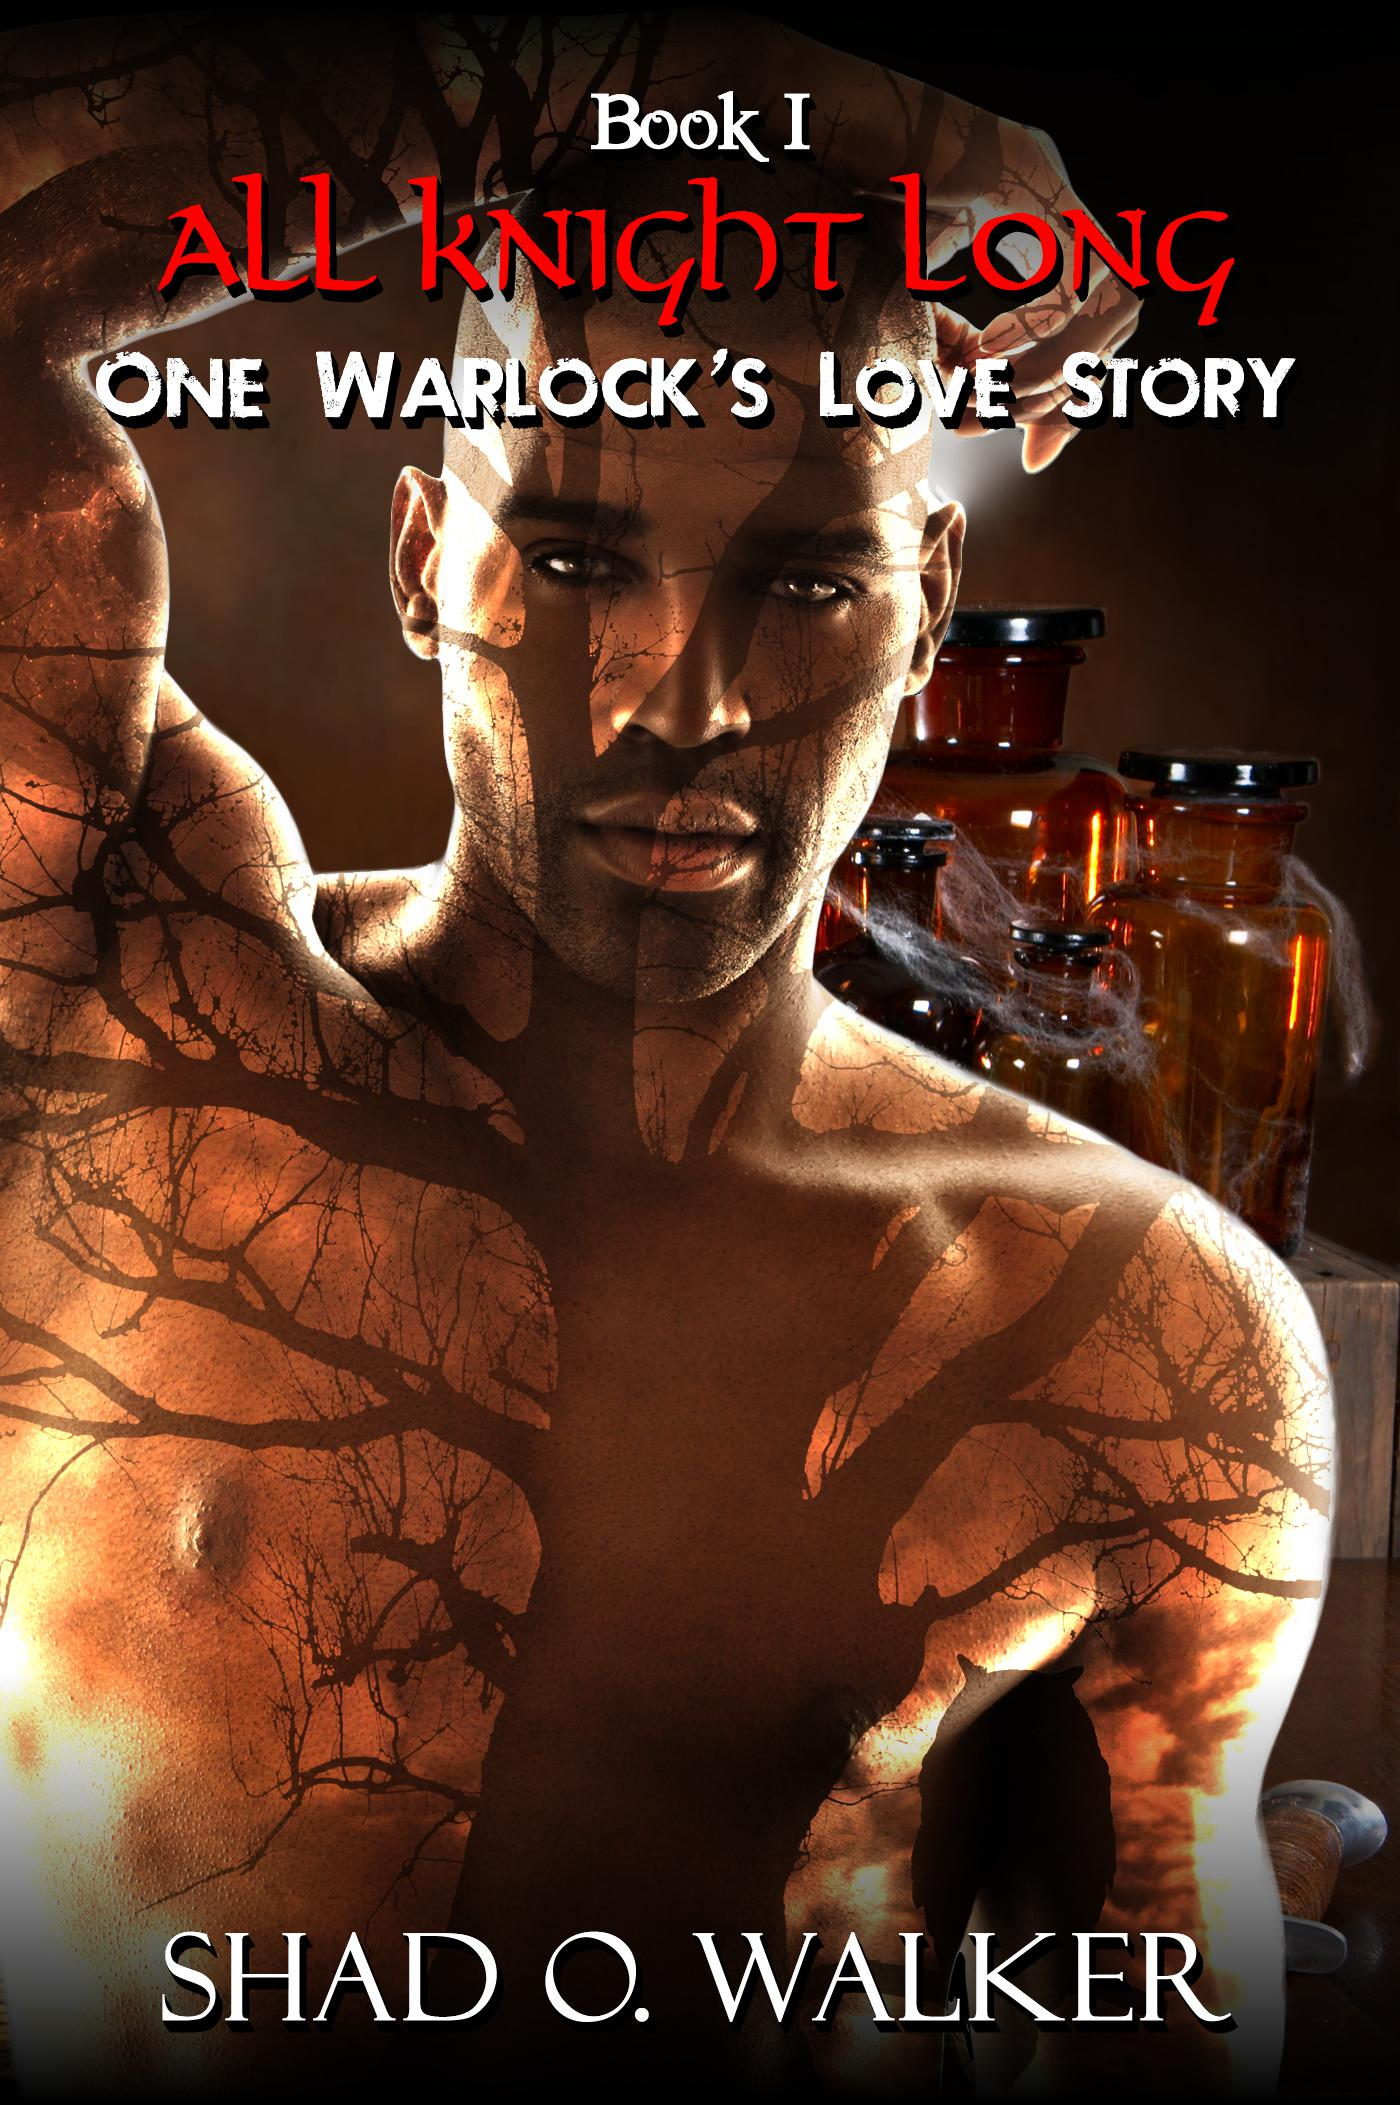 Check out this HOT Erotic Paranormal Romance Series, ONE WARLOCK'S LOVE STORY!